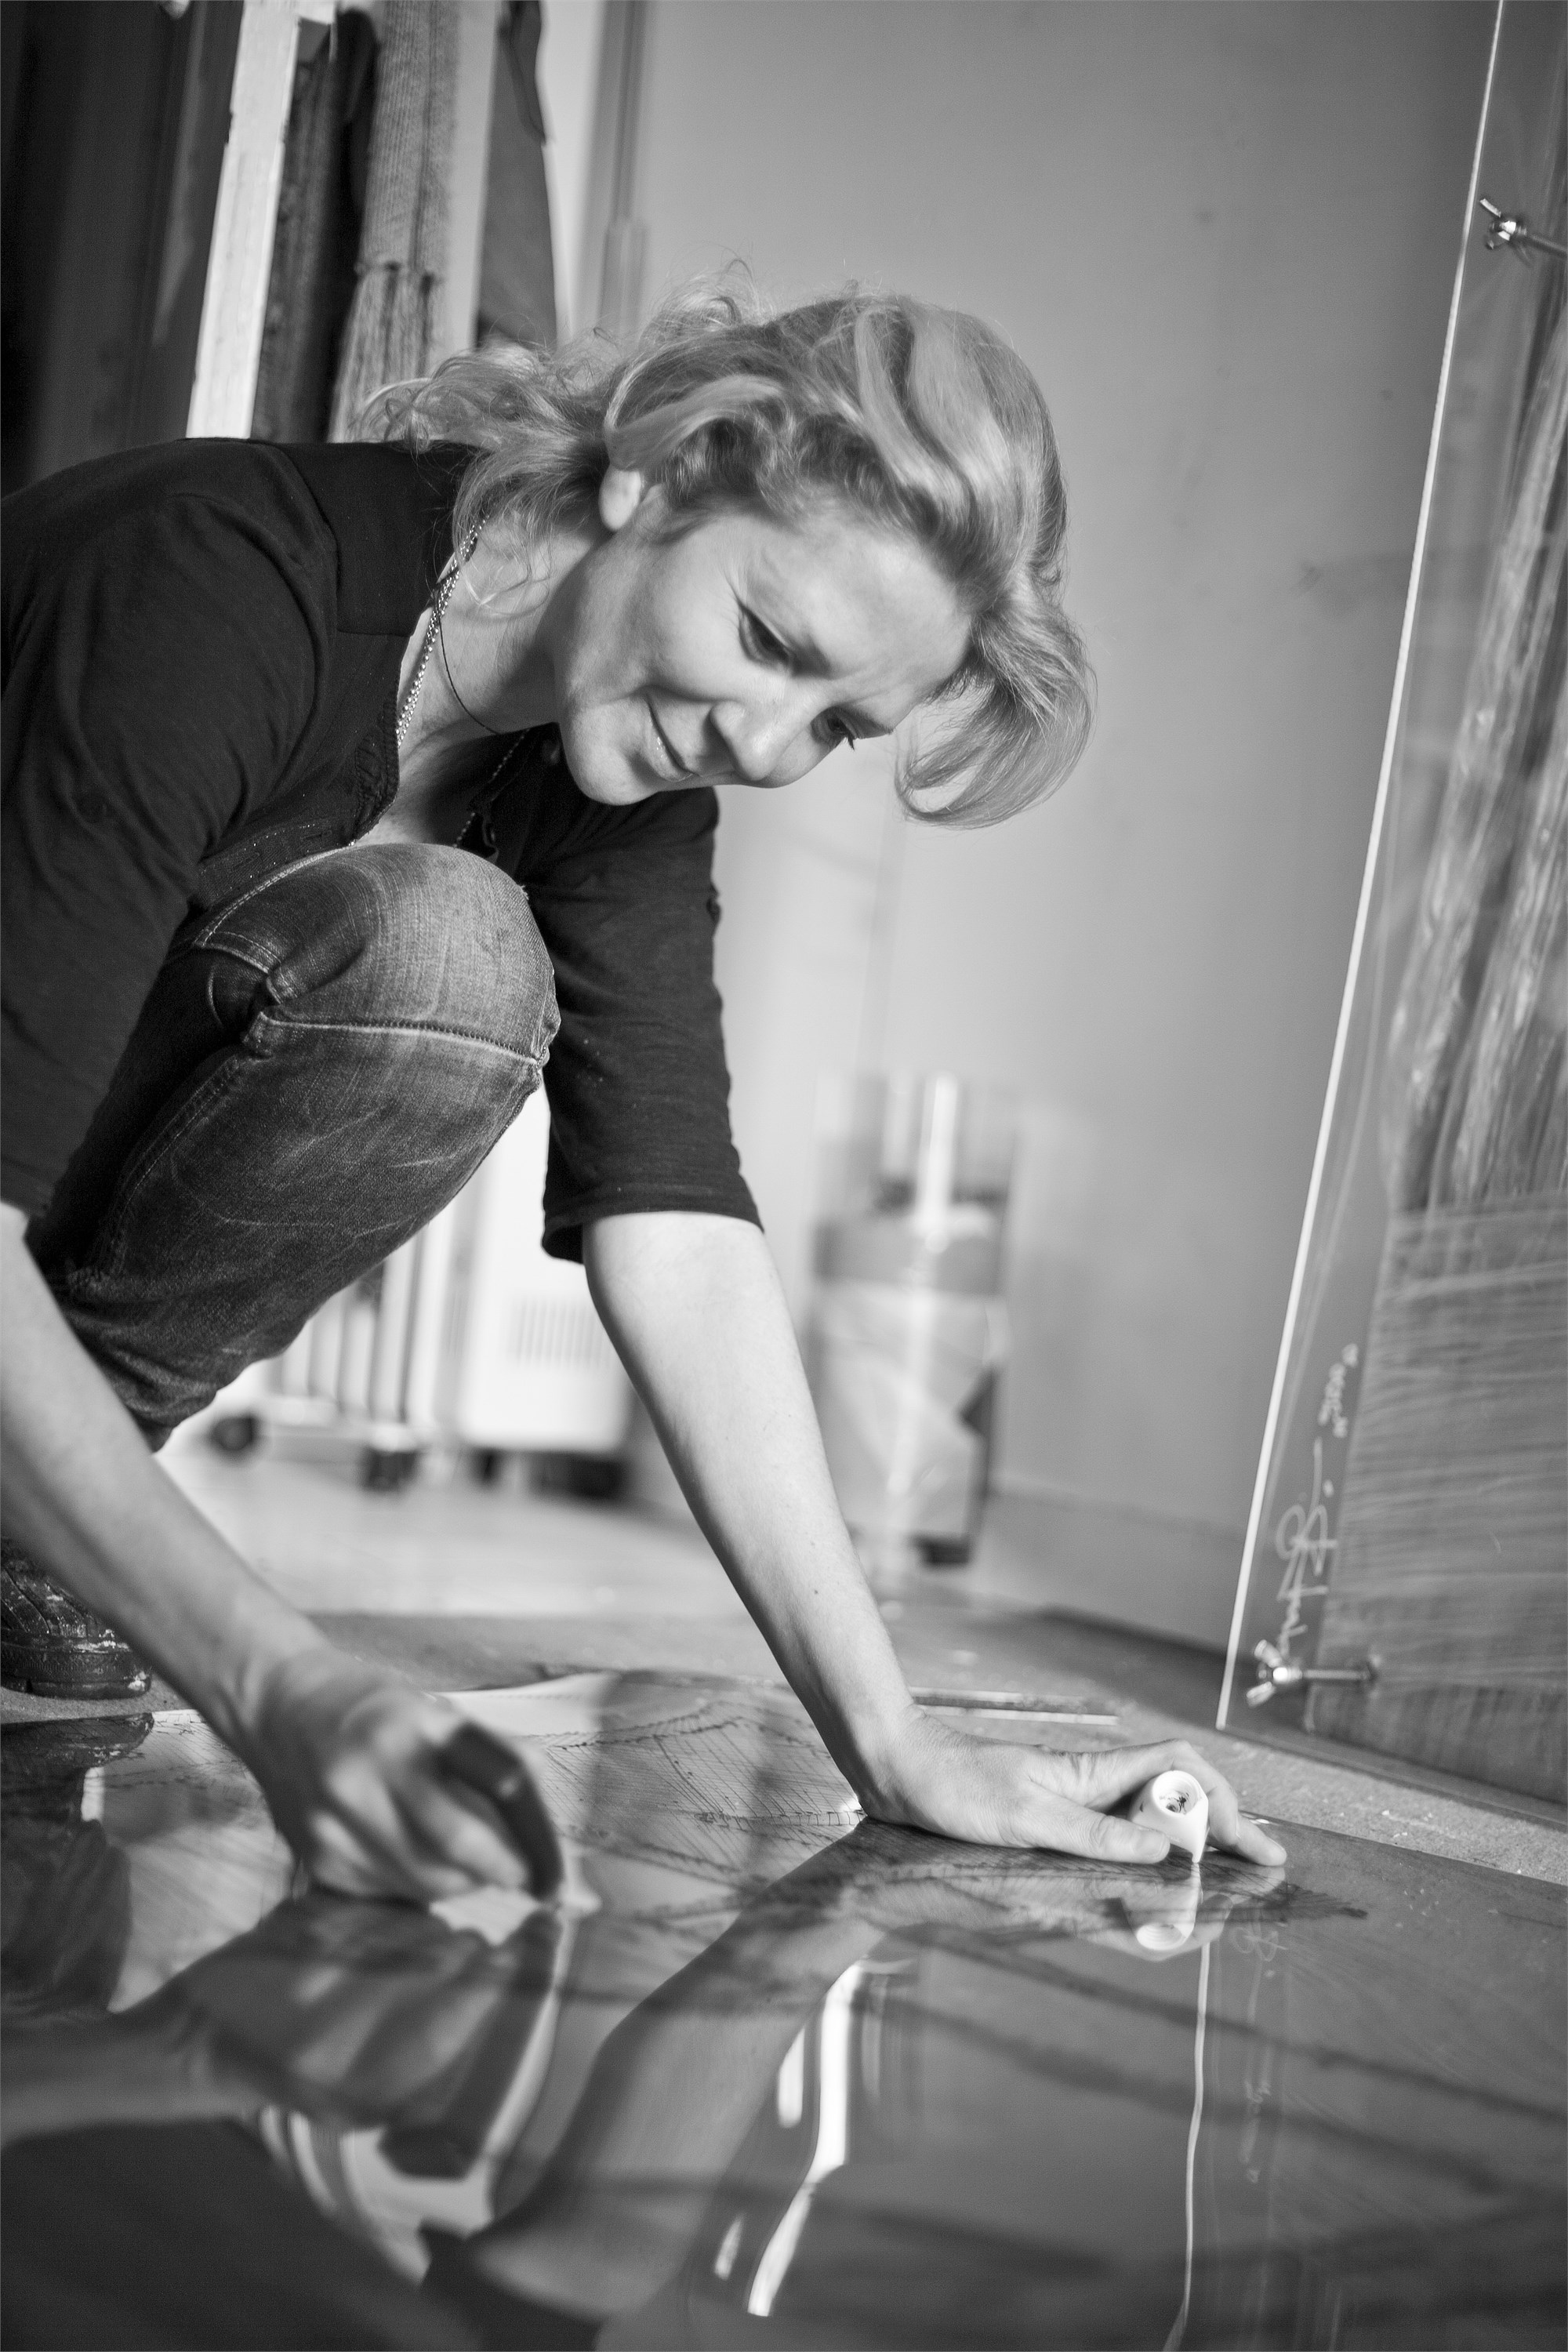 Sandra Baía, painter at zet gallery